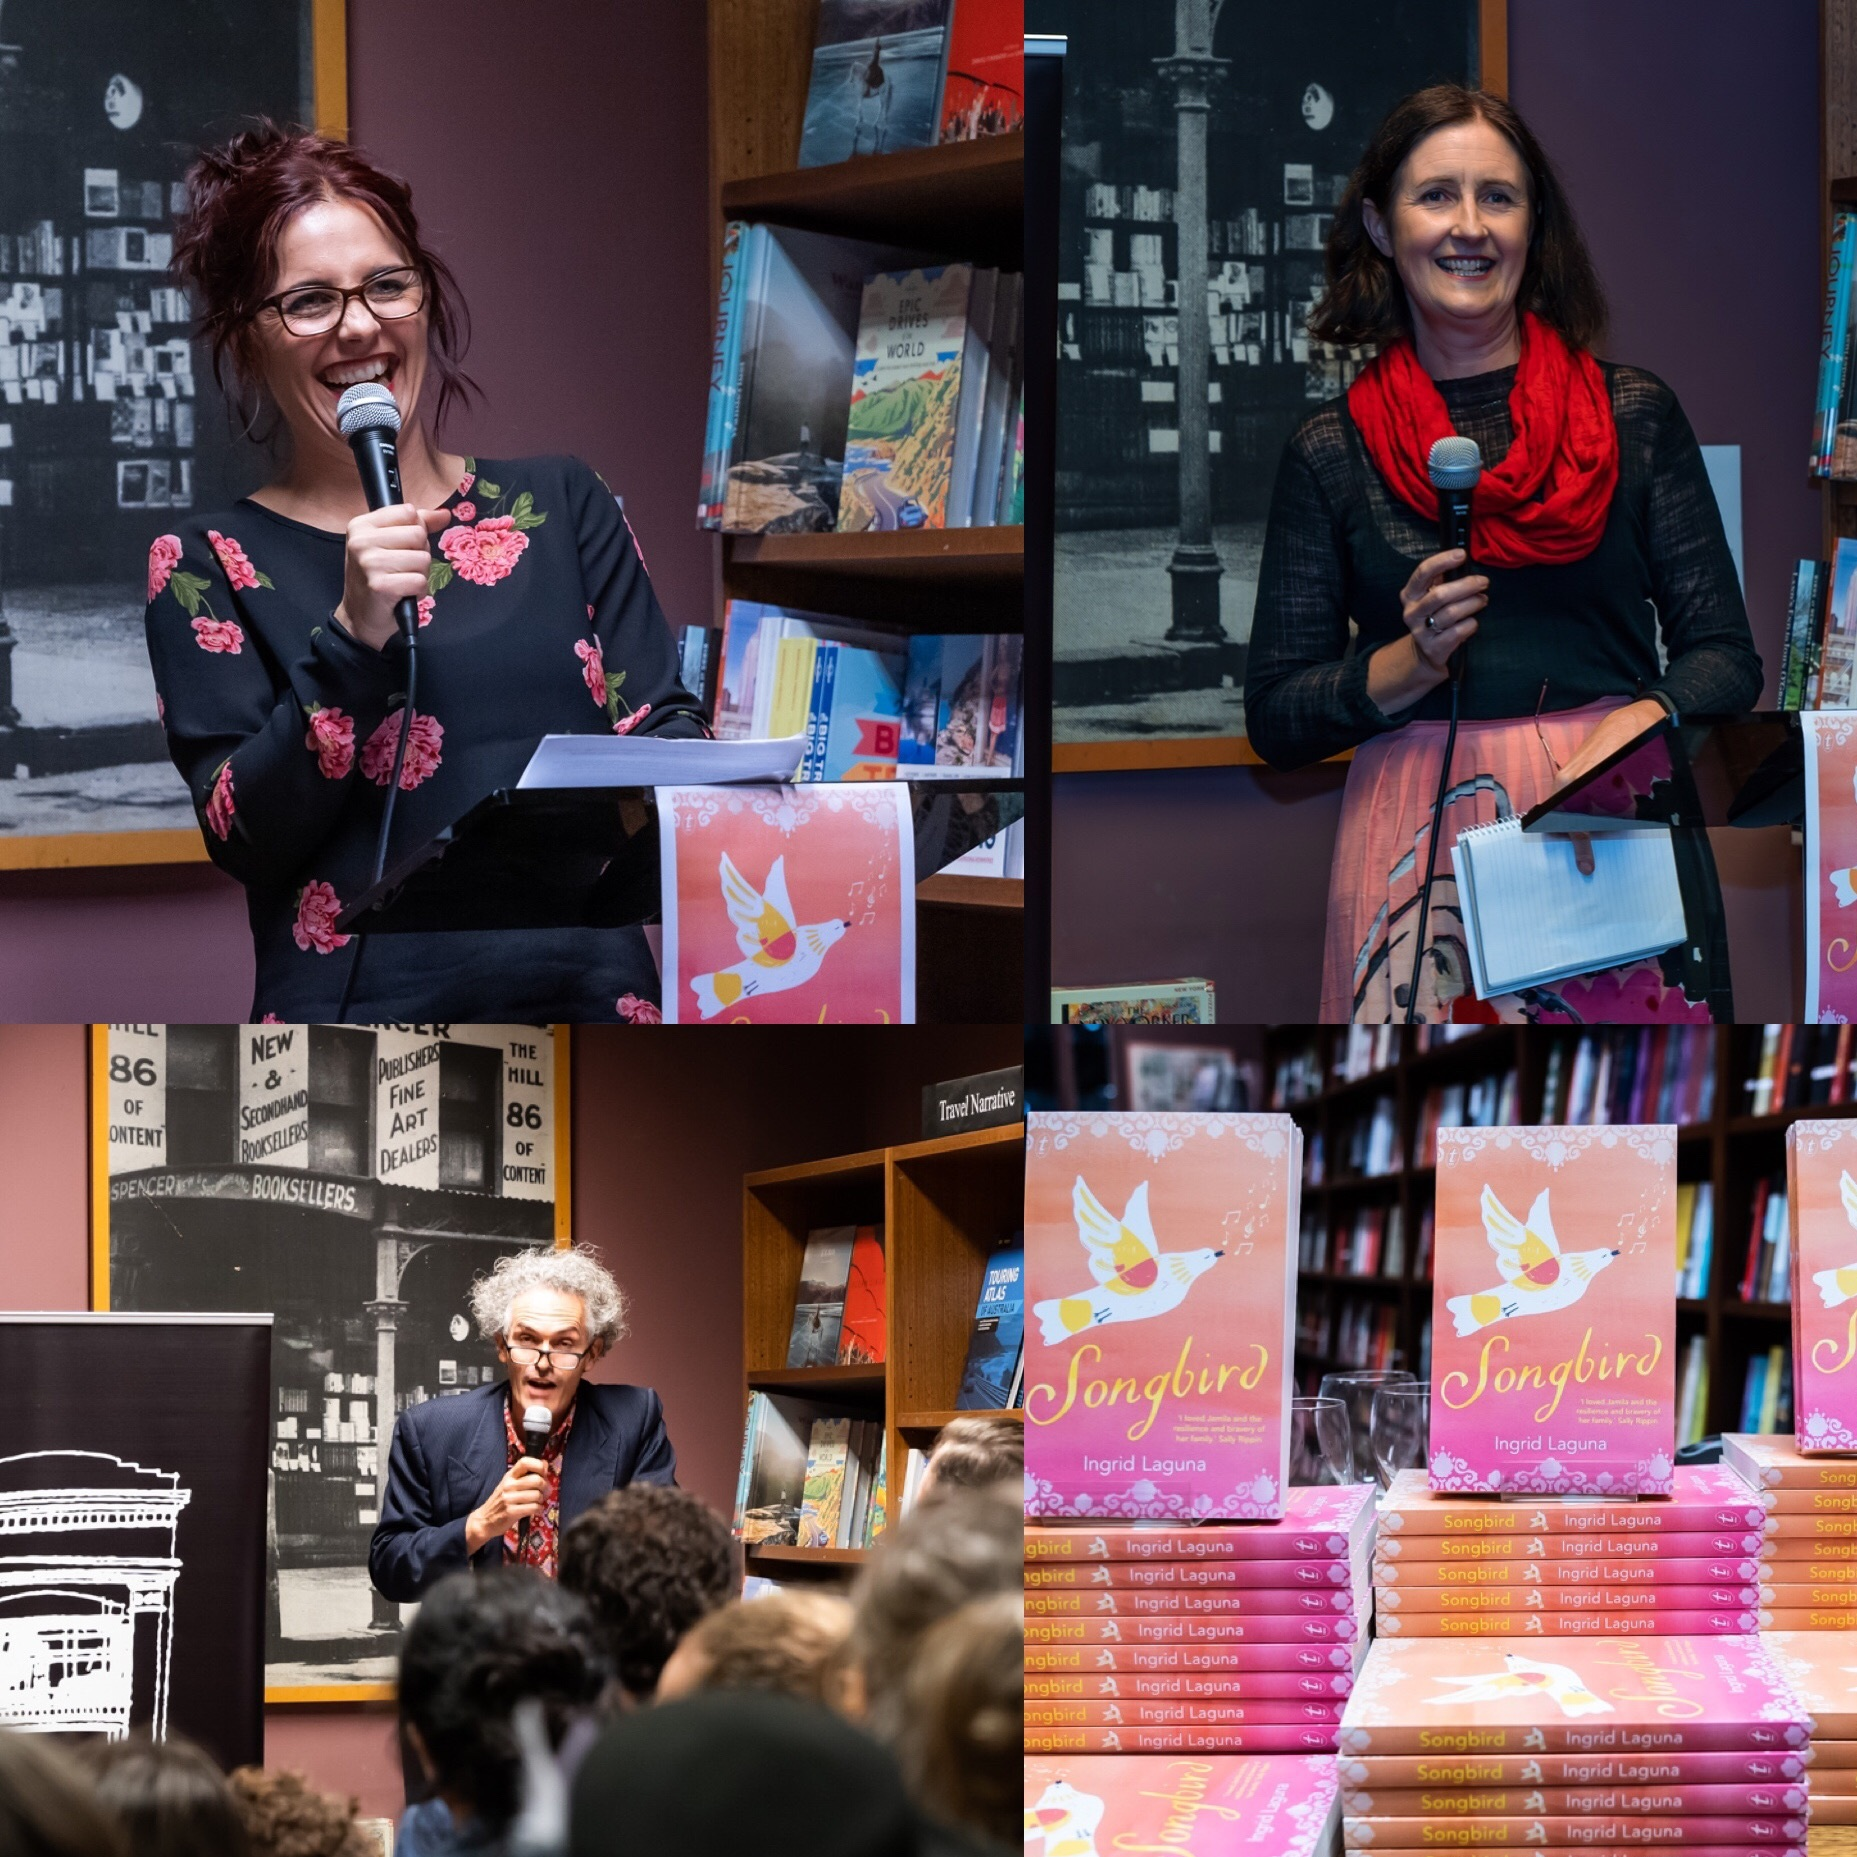 Songbird launch at The Hill of Content, with my editor Jane Pearson (top right), the brilliant Bernard Caleo (bottom left) and also Rachel Power - photos to come! A wonderful night.